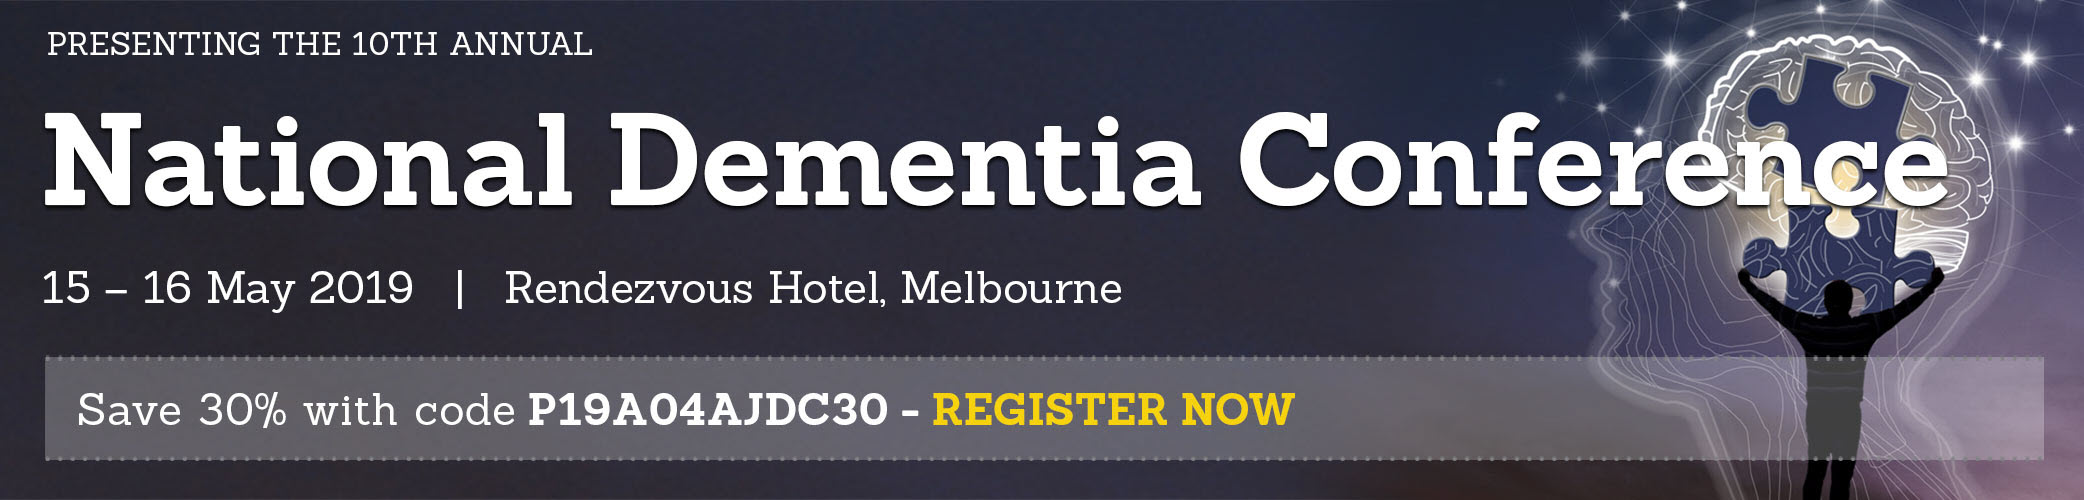 National Dementia Conference